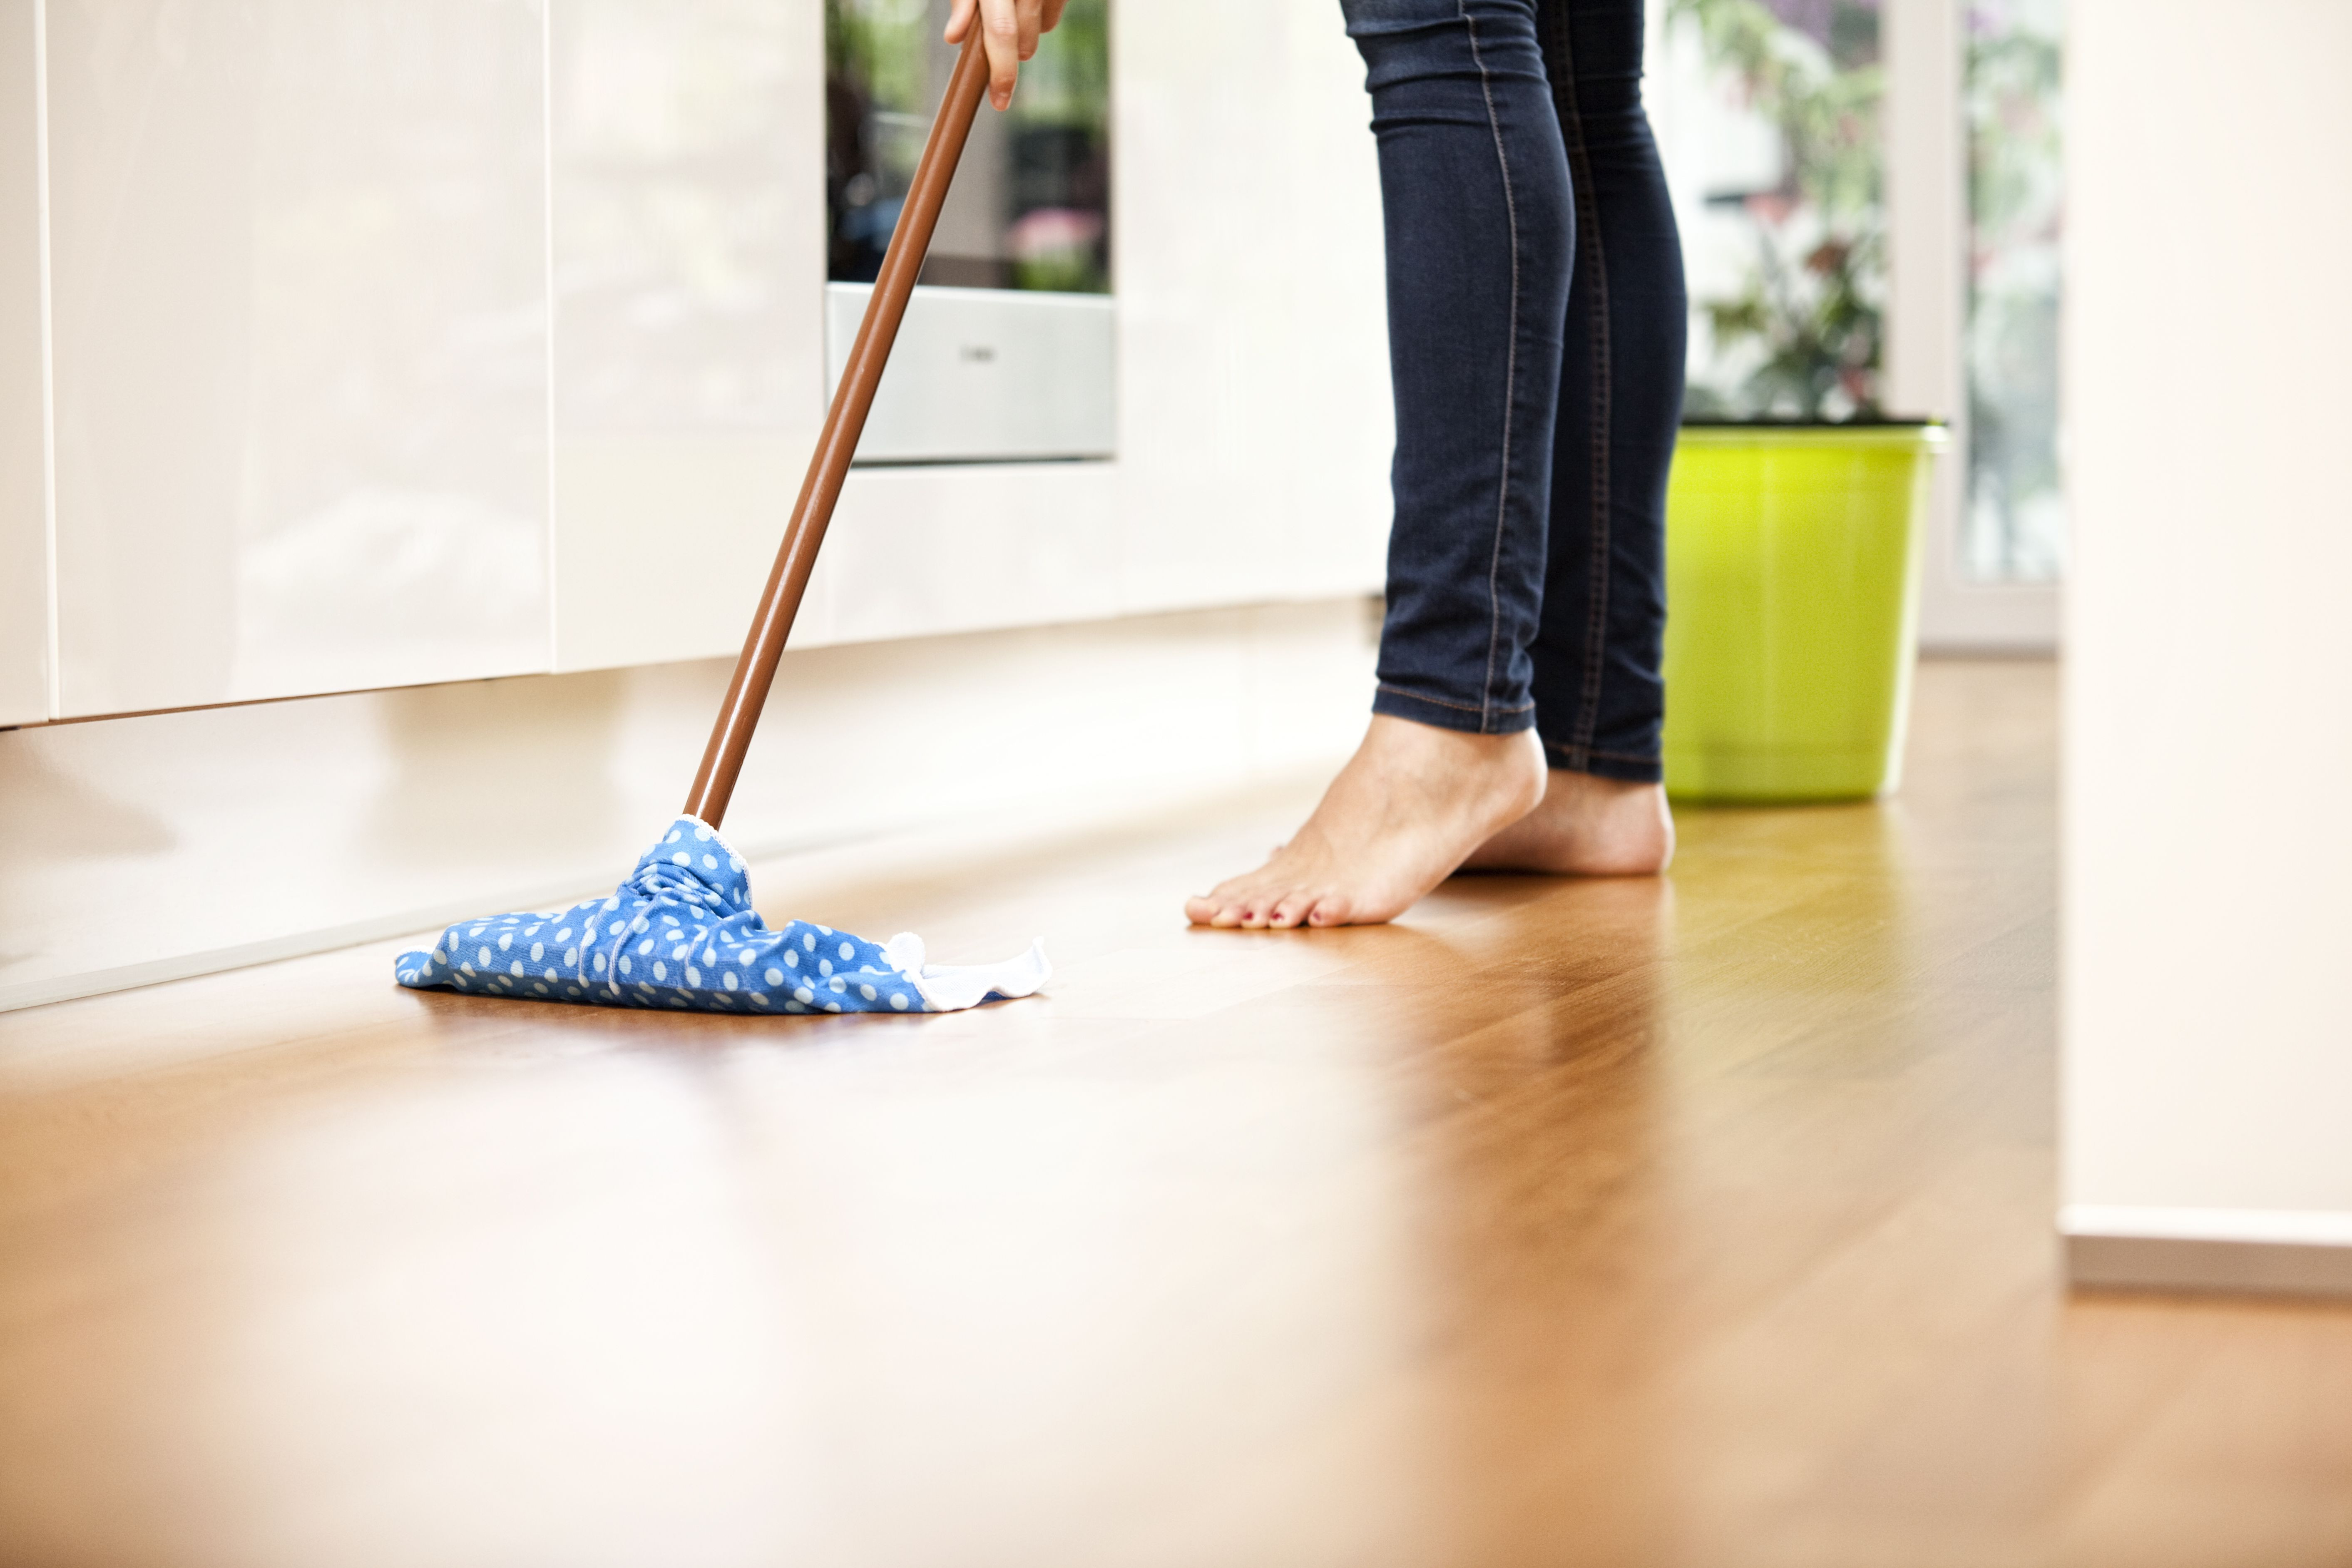 bona hardwood floor care system of the right cleaners for your solid hardwood flooring inside woman wiping the floor 588494585 585049b43df78c491ebc200a